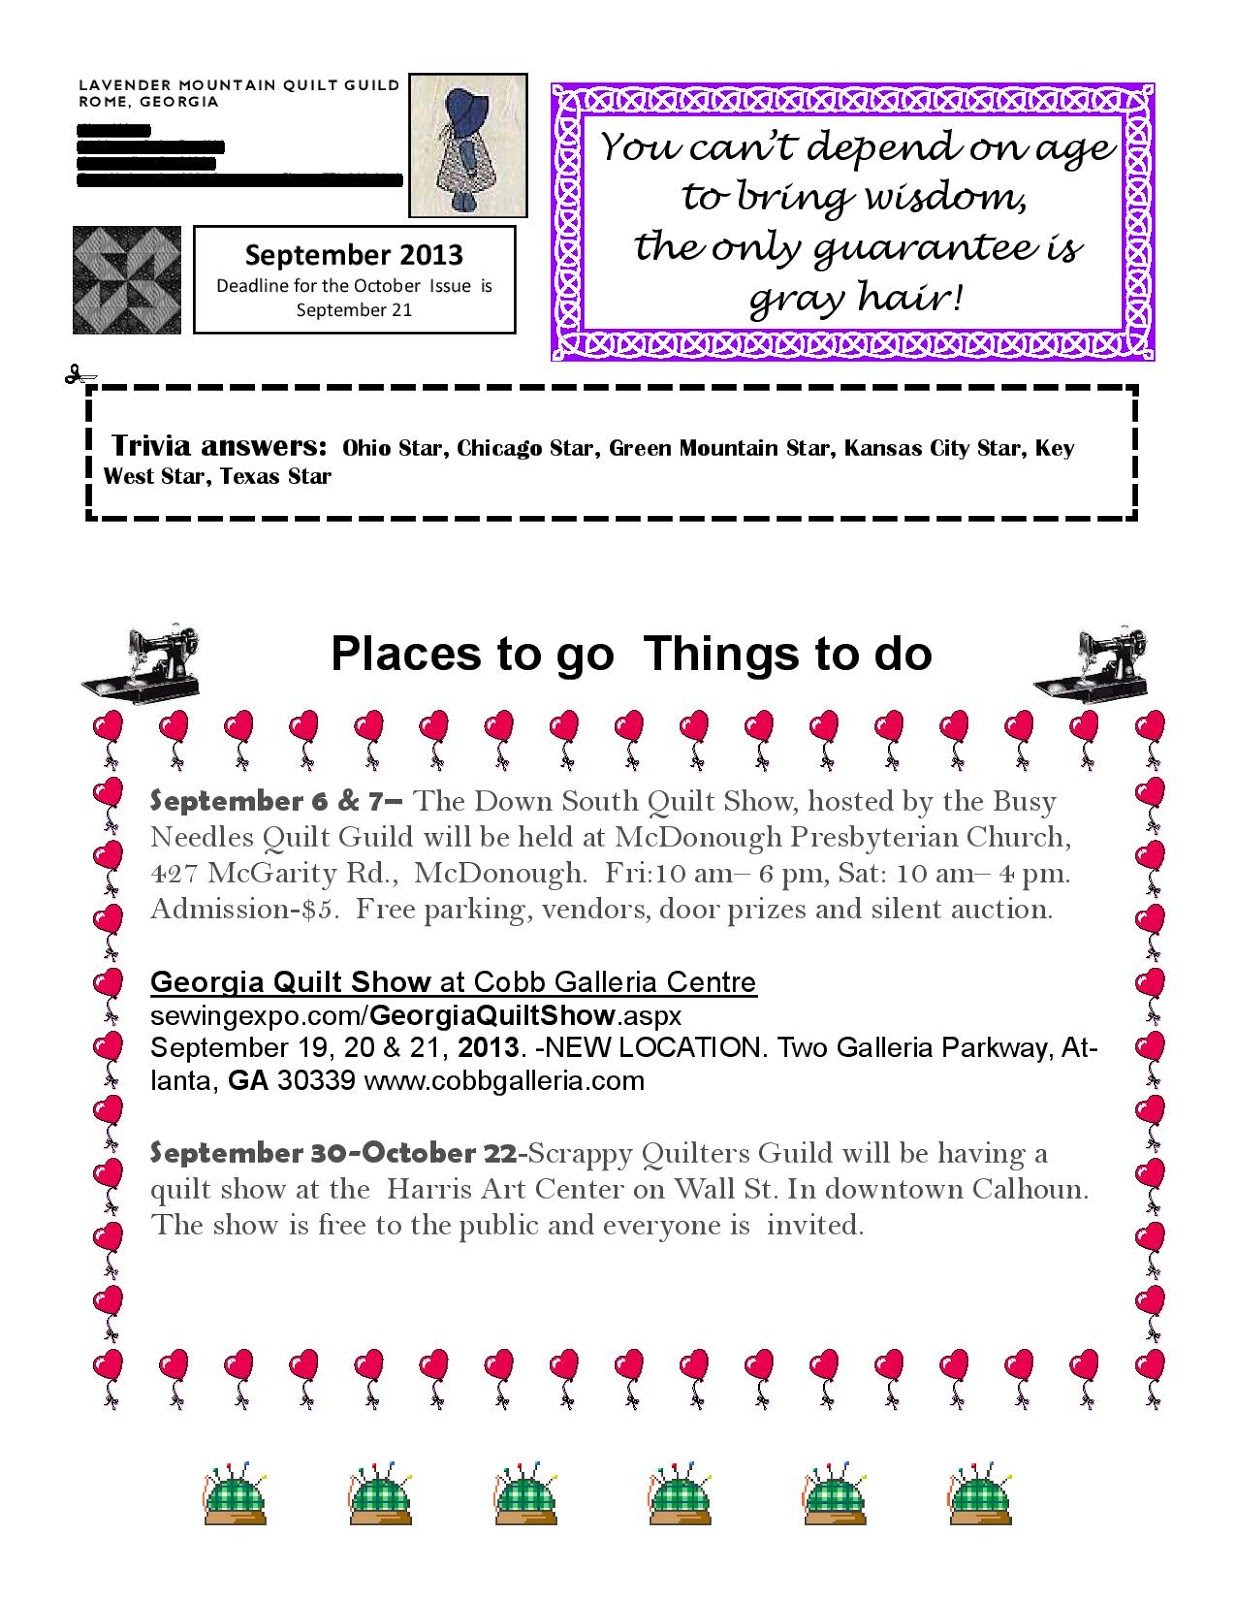 Quilt Guild Newsletter Ideas : Lavender Mountain Quilt Guild